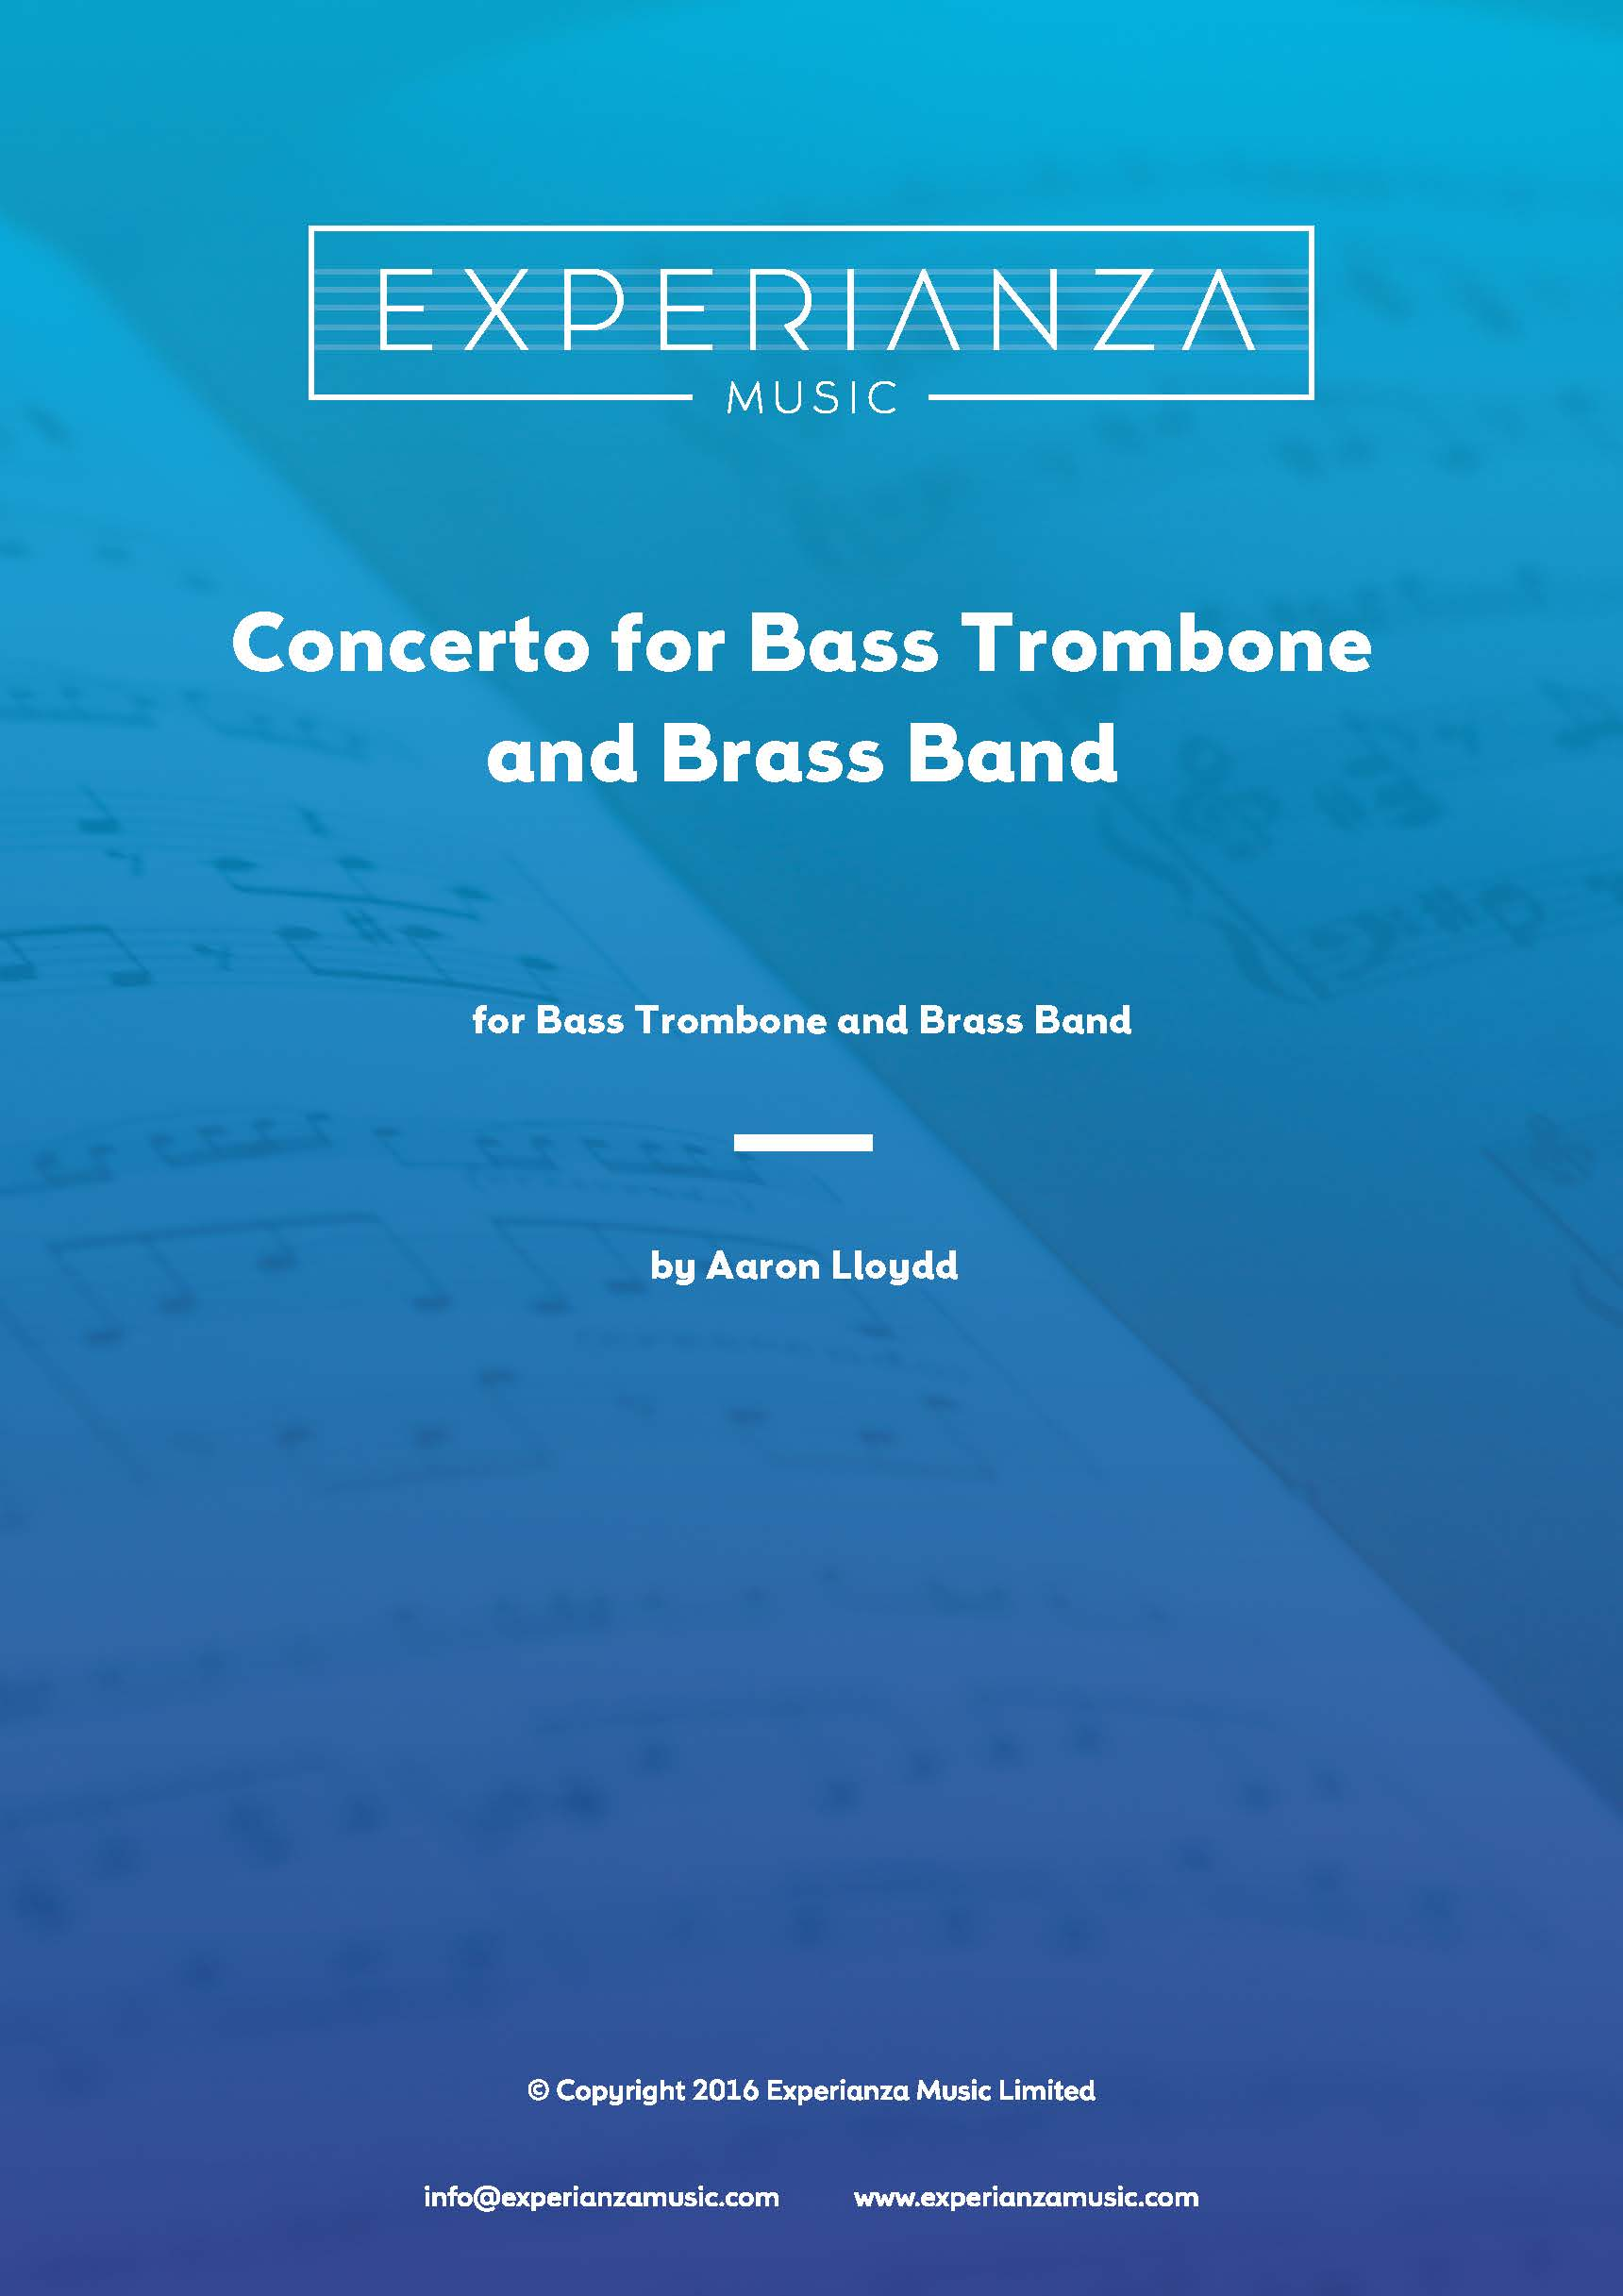 Concerto for Bass Trombone (Brass Band - Score and Parts)